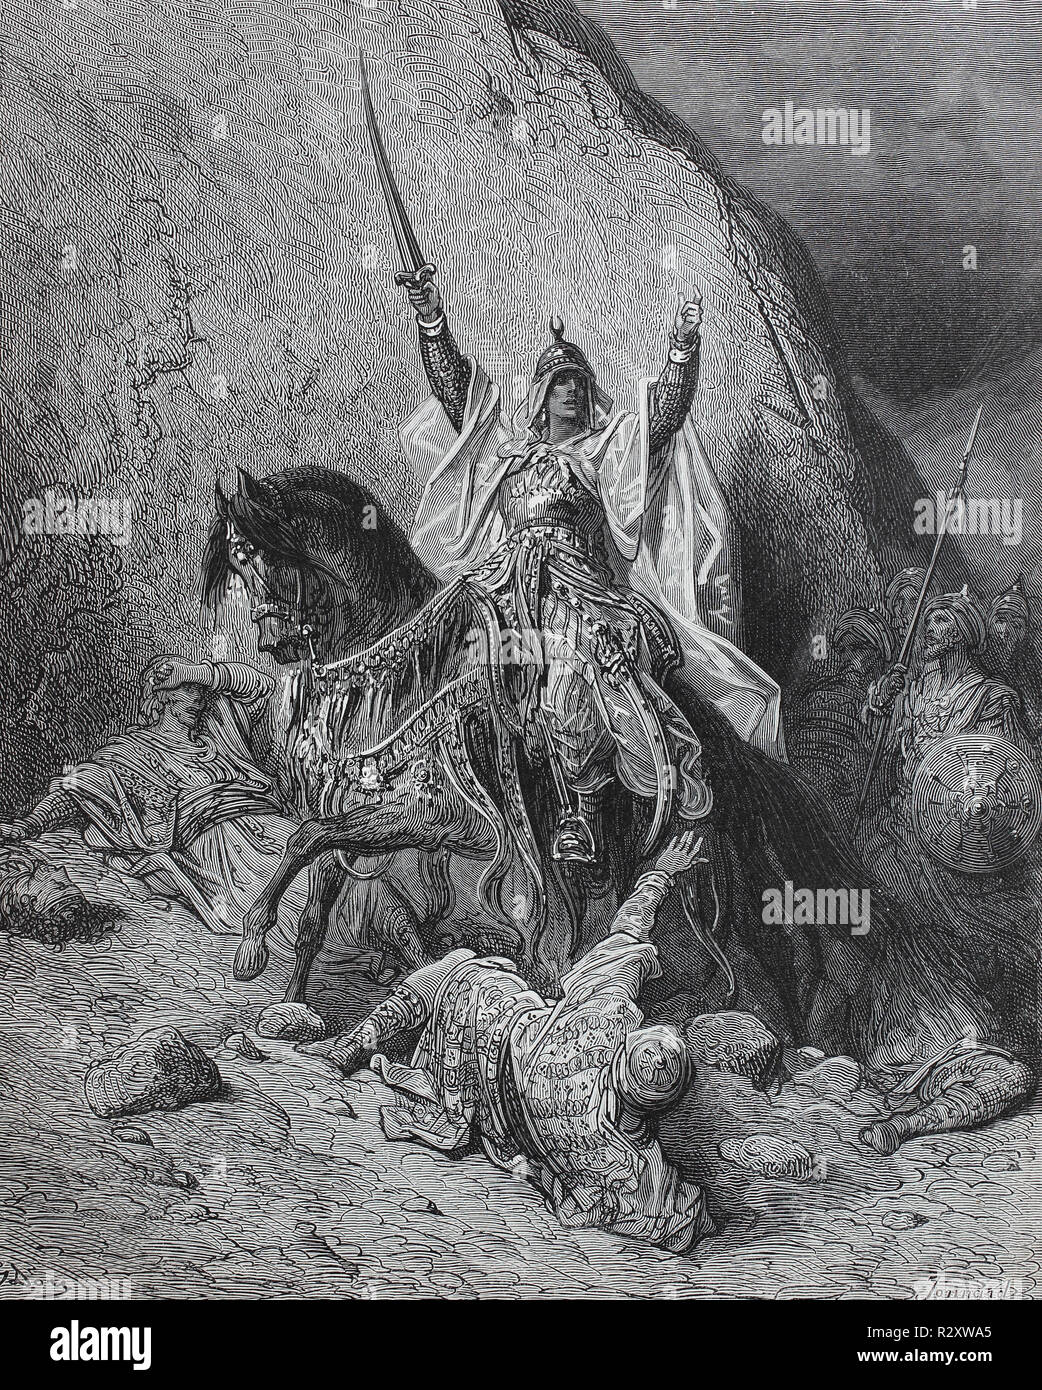 Digital improved reproduction, saladin was from 1171 the first sultan of egypt and from 1174 sultan of syria, Saladin war ab 1171 der erste Sultan von Ägypten und ab 1174 Sultan von Syrien, Third Crusade. Salaheddin, from an original print published in the 19th century - Stock Image